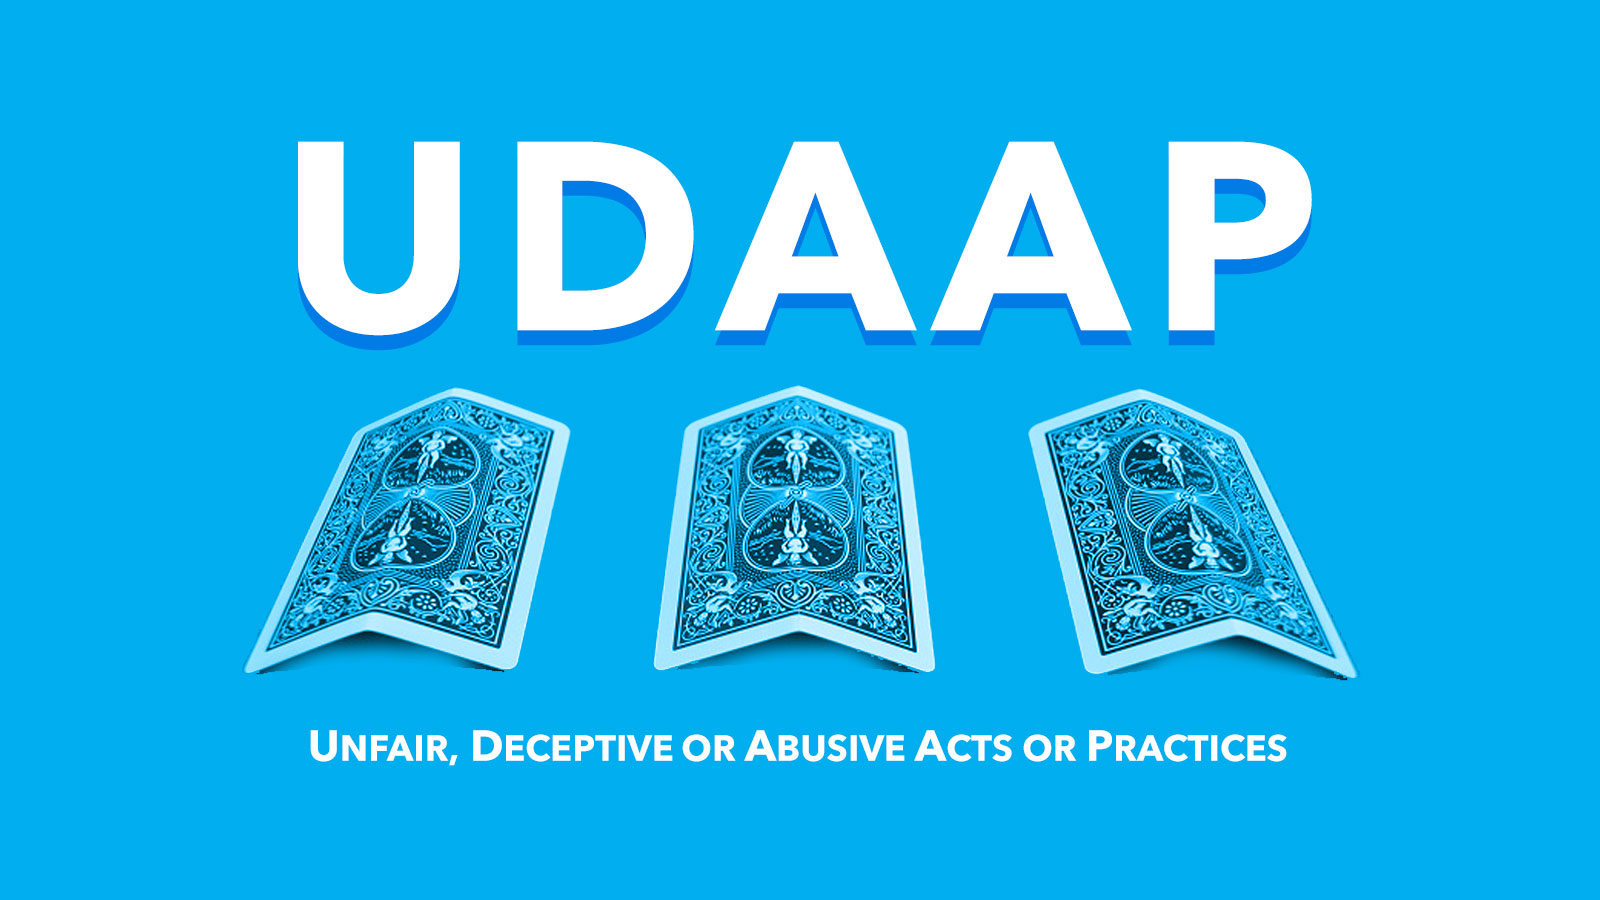 5 Best Practices for UDAAP Compliance [GUIDE]